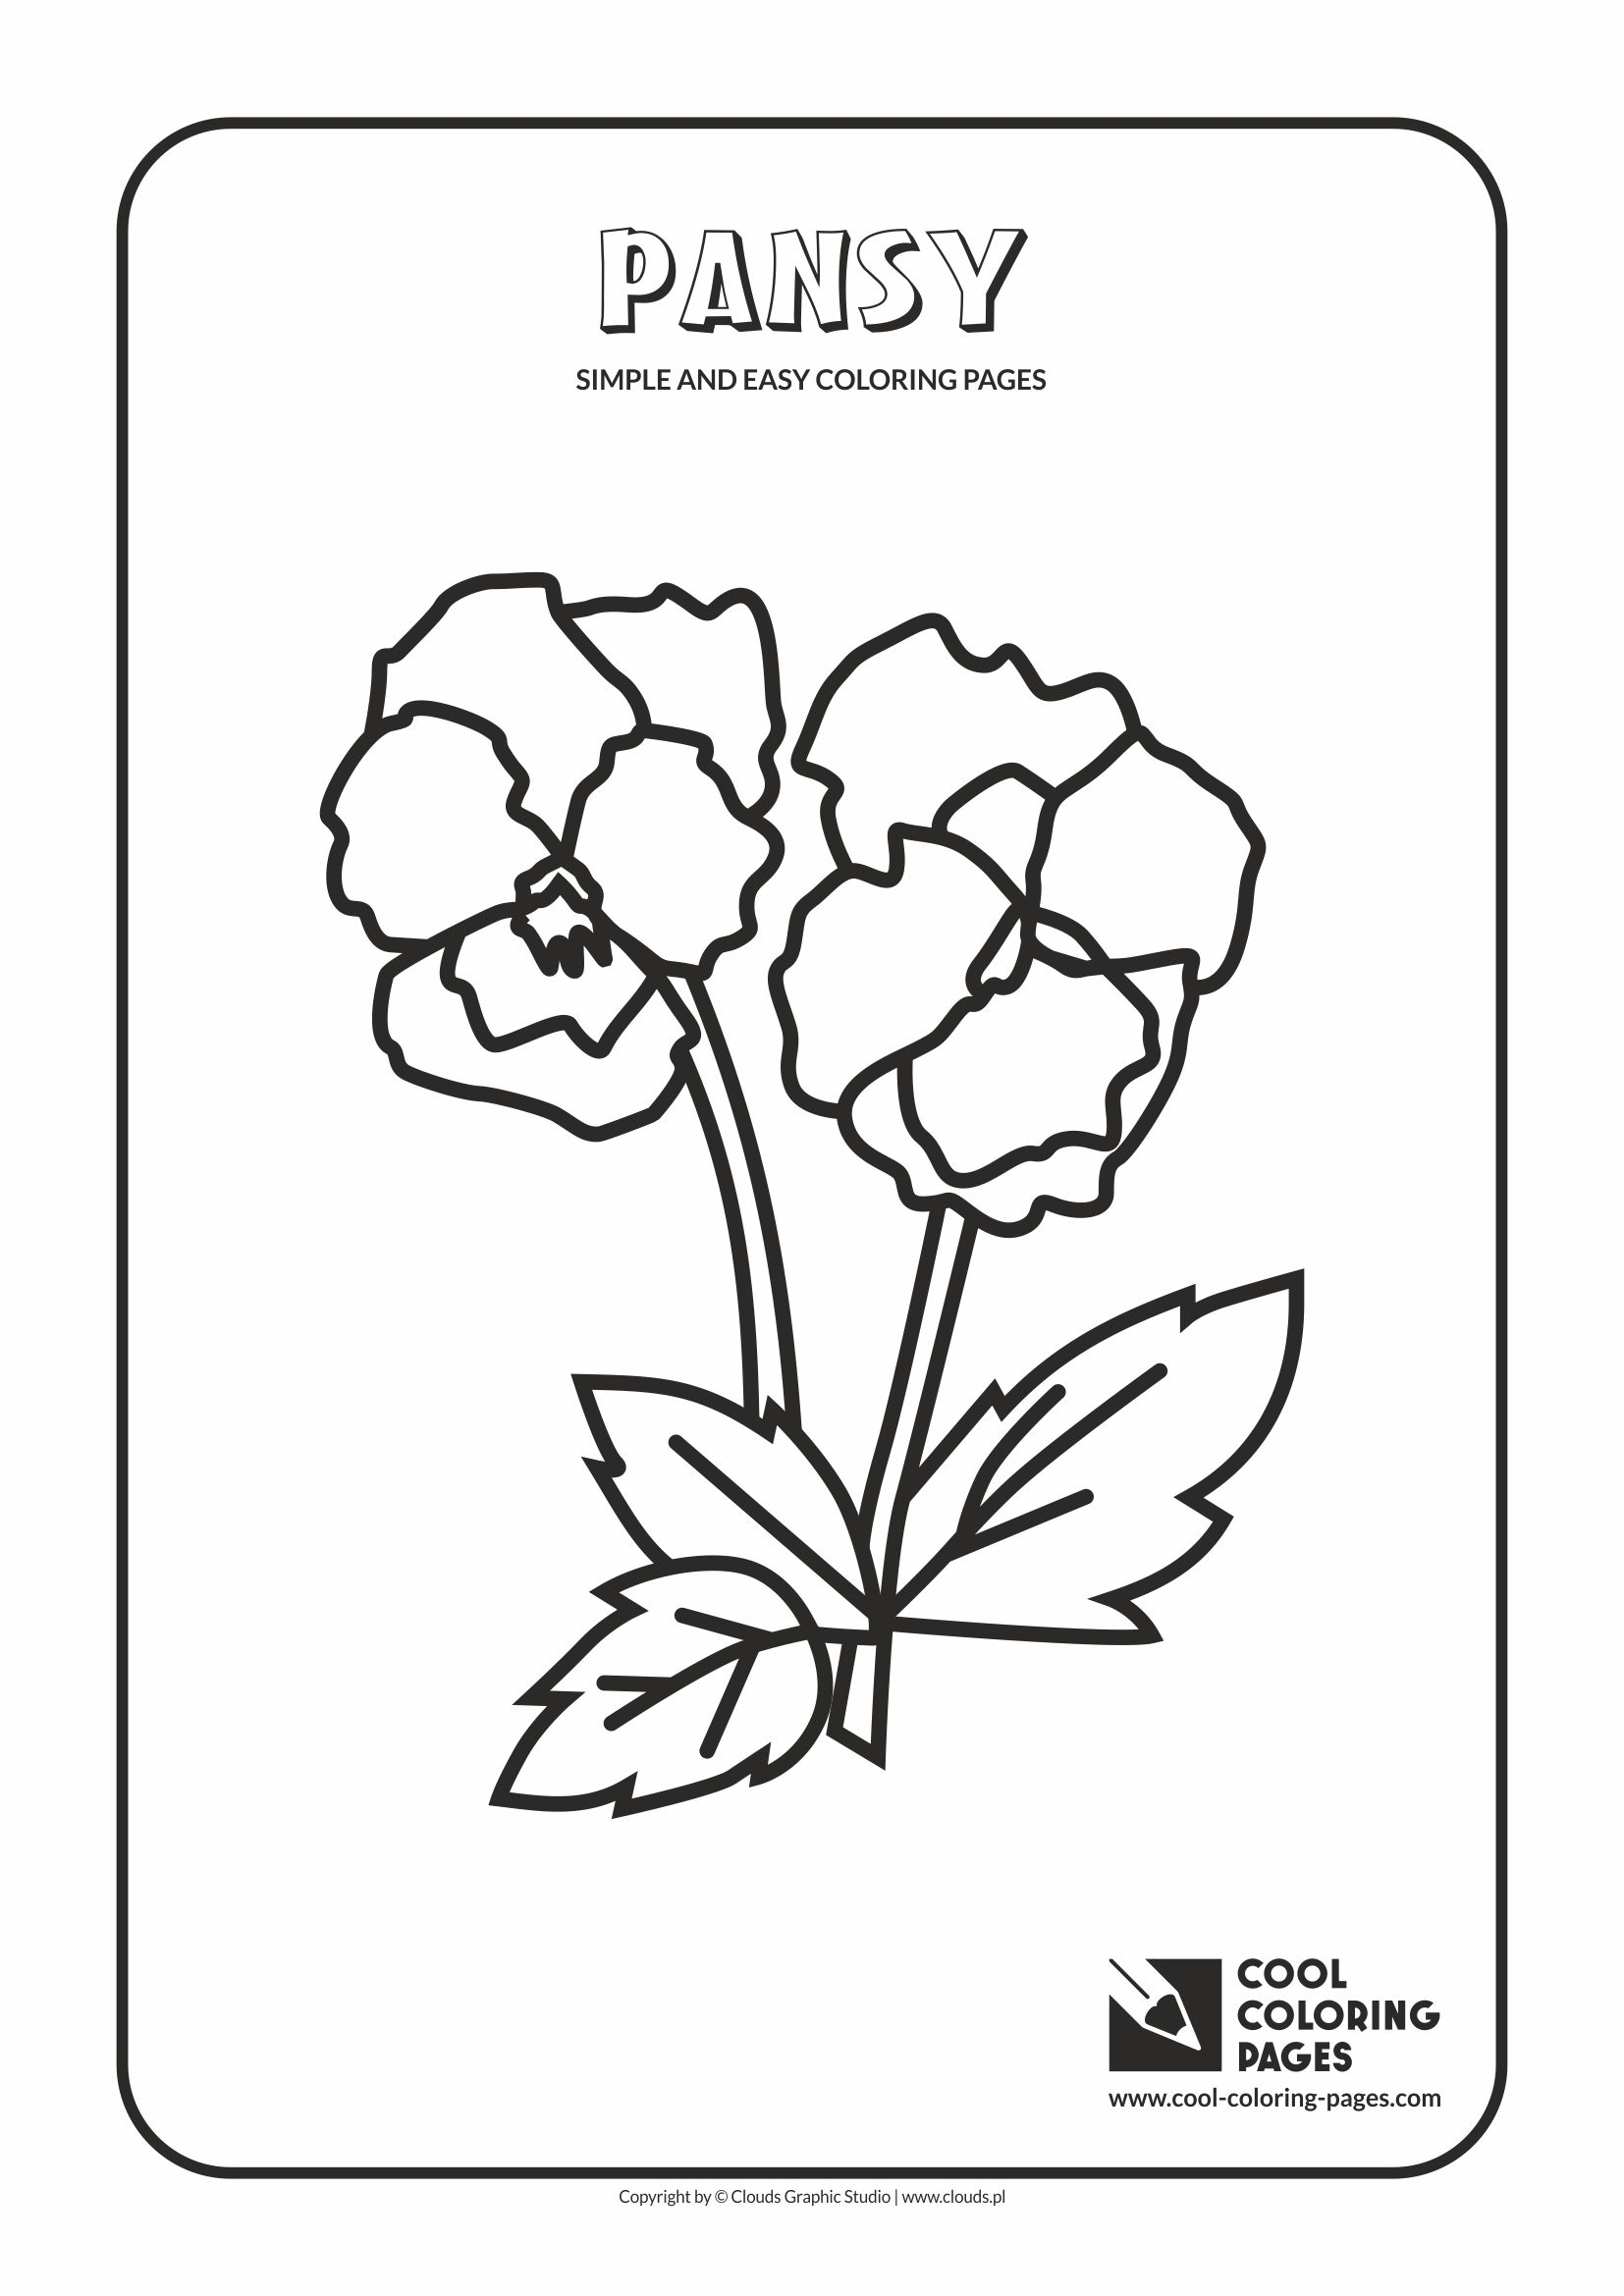 Simple and easy coloring pages for toddlers - Pansy